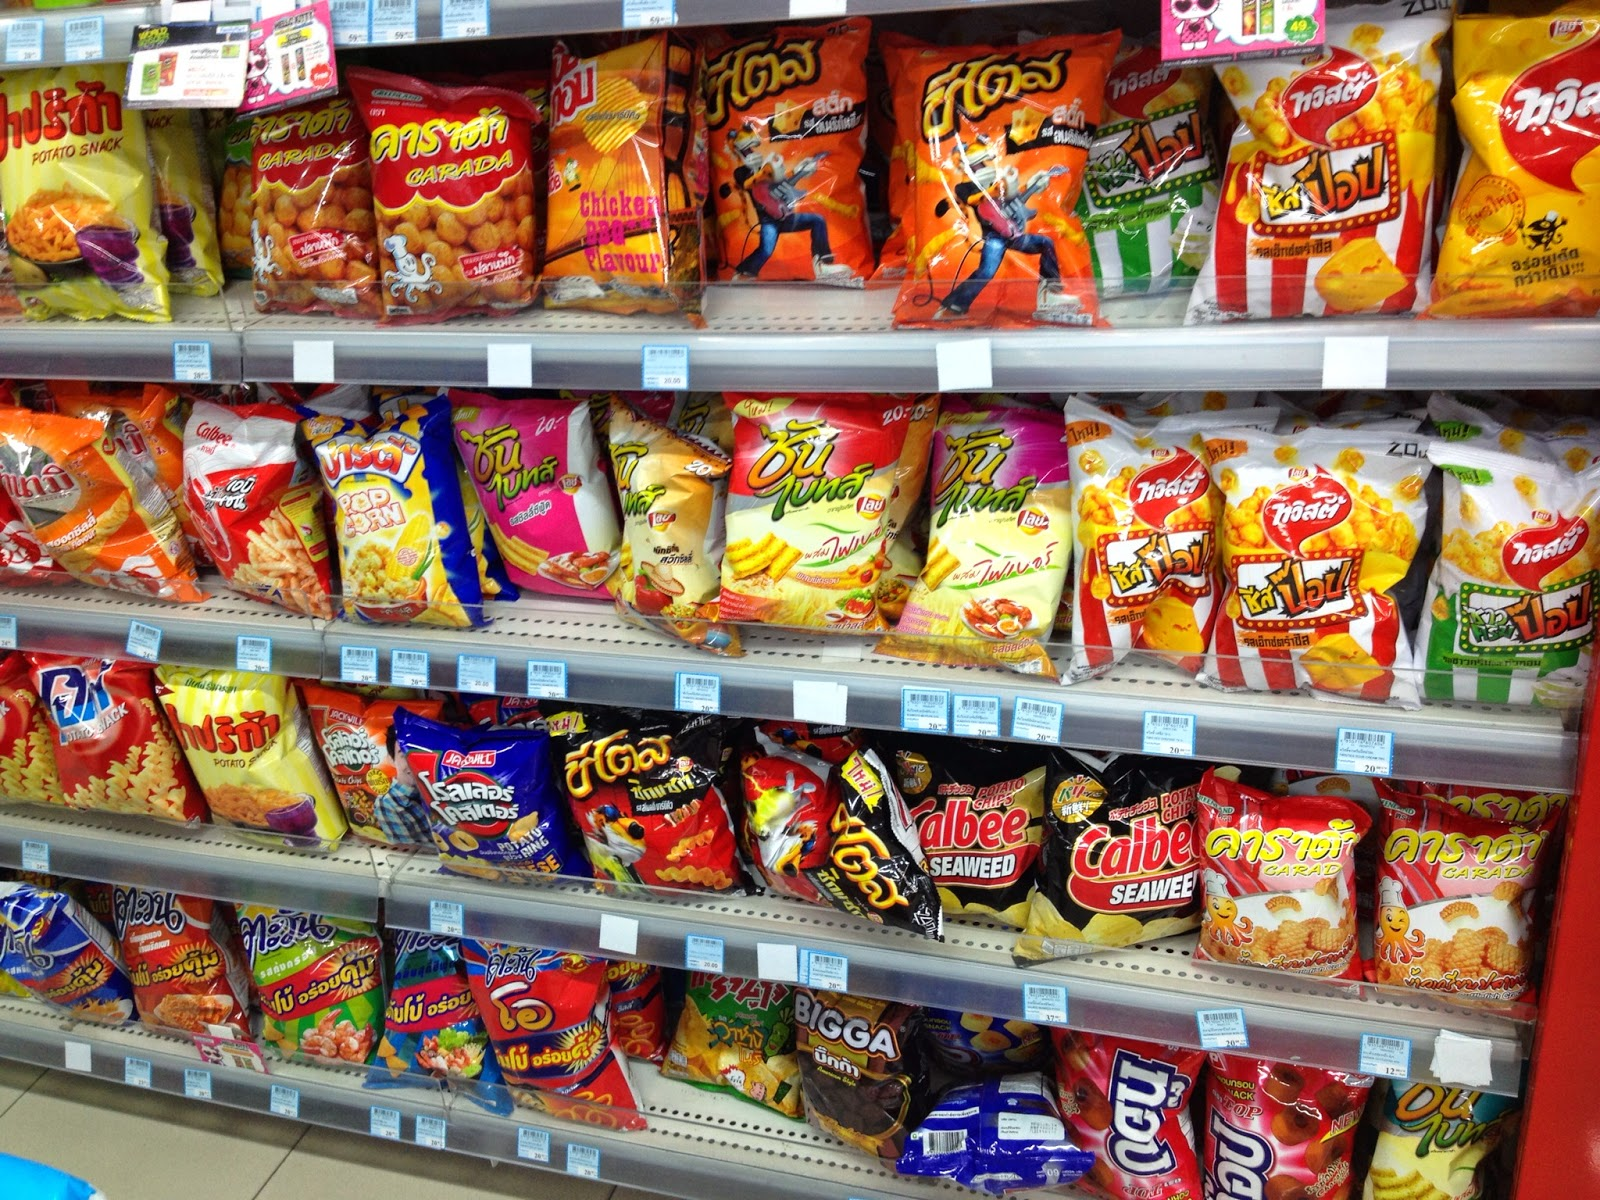 Chiang Mai - I love checking out the snacks section in foreign countries